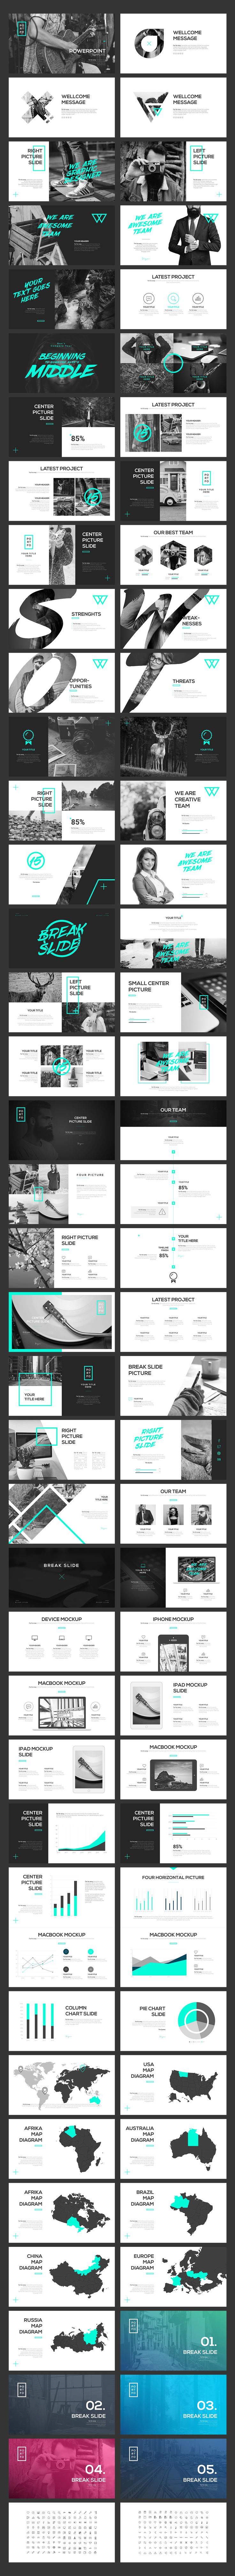 PORTFO PowerPoint Template by Angkalimabelas on @creativemarket